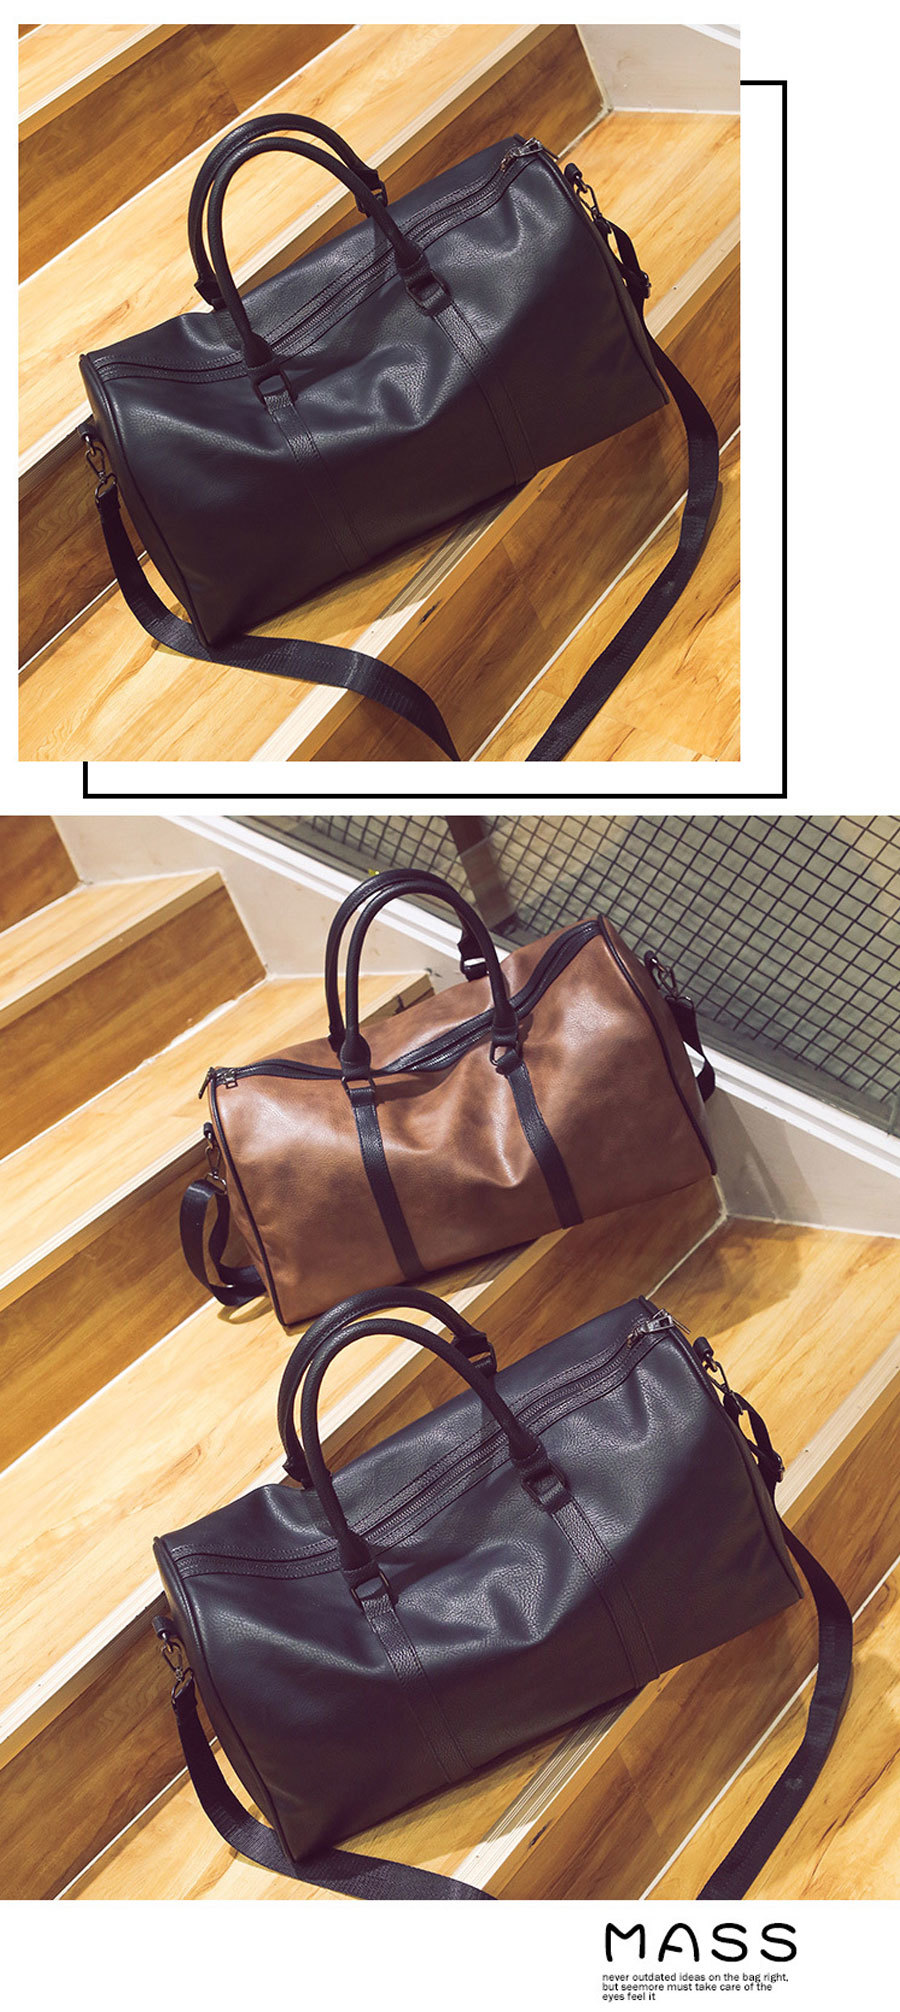 Topdudes.com - Large Capacity Vintage PU Leather Travel Bag